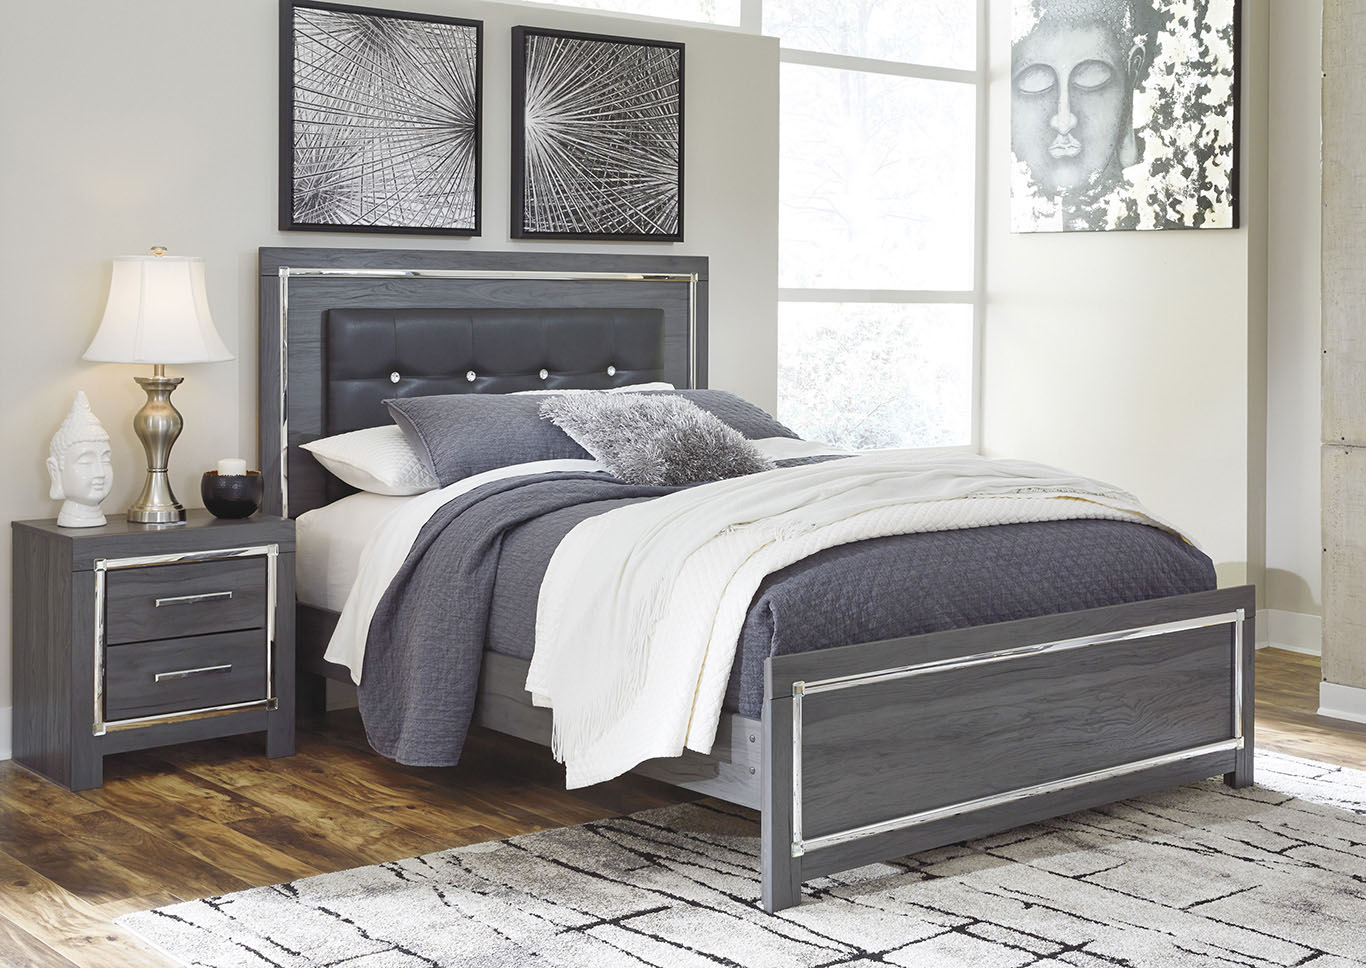 Lodanna Gray Queen Panel Bed,Signature Design By Ashley